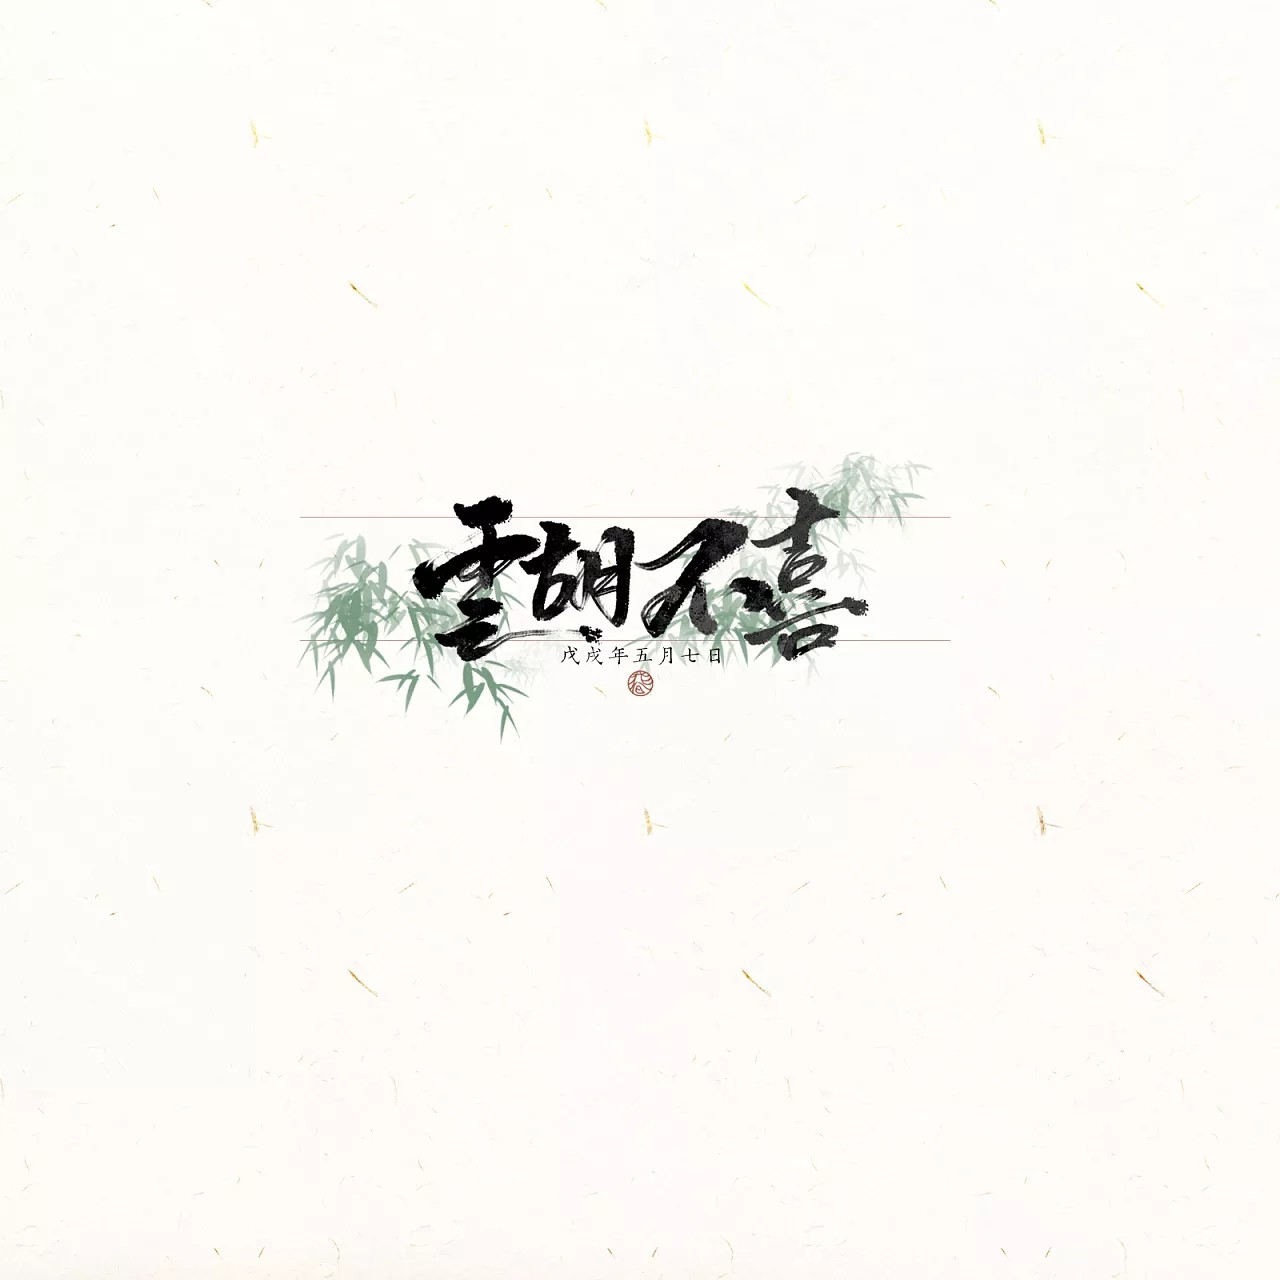 4P Chinese traditional landscape style font design